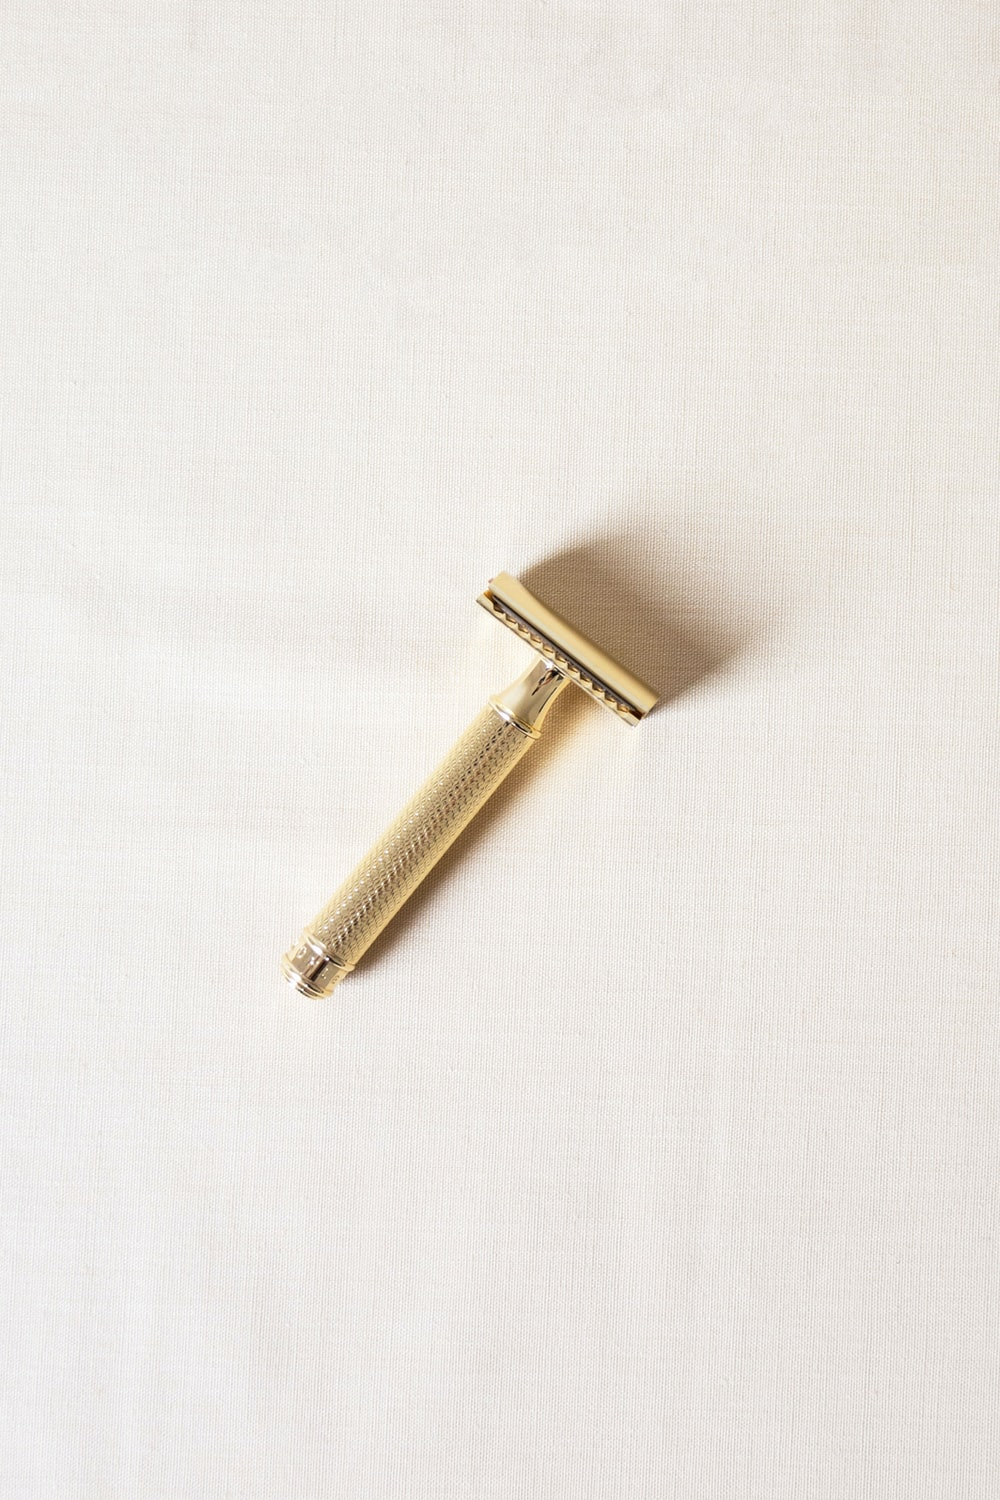 gold-color shaver on white surface